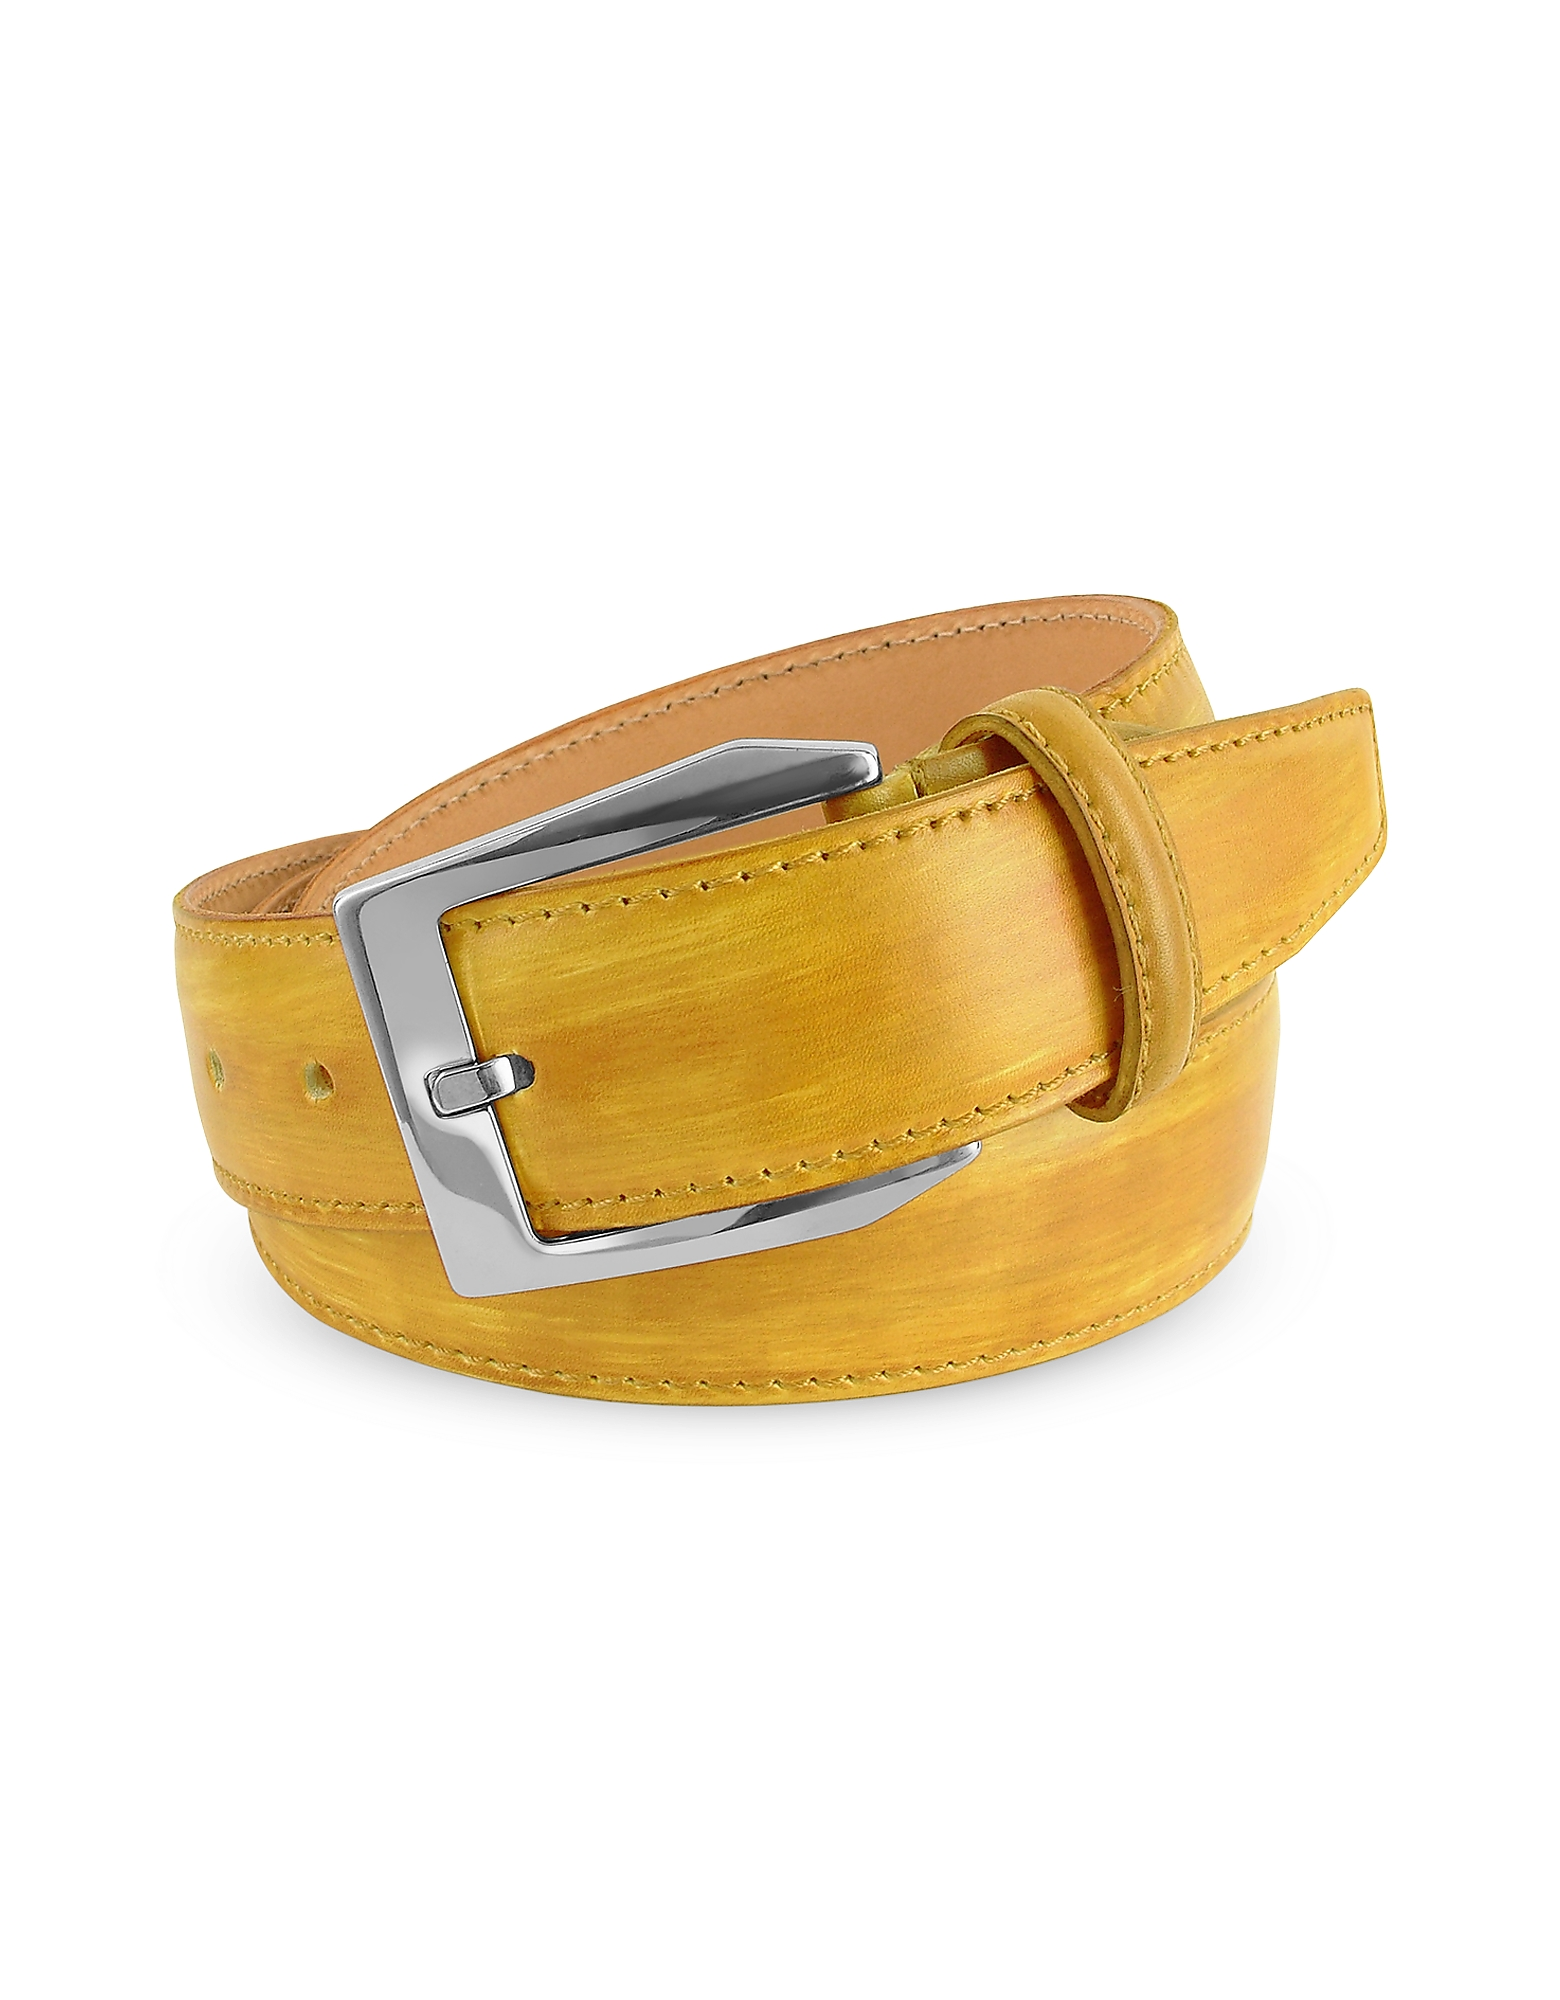 Men's Yellow Hand Painted Italian Leather Belt